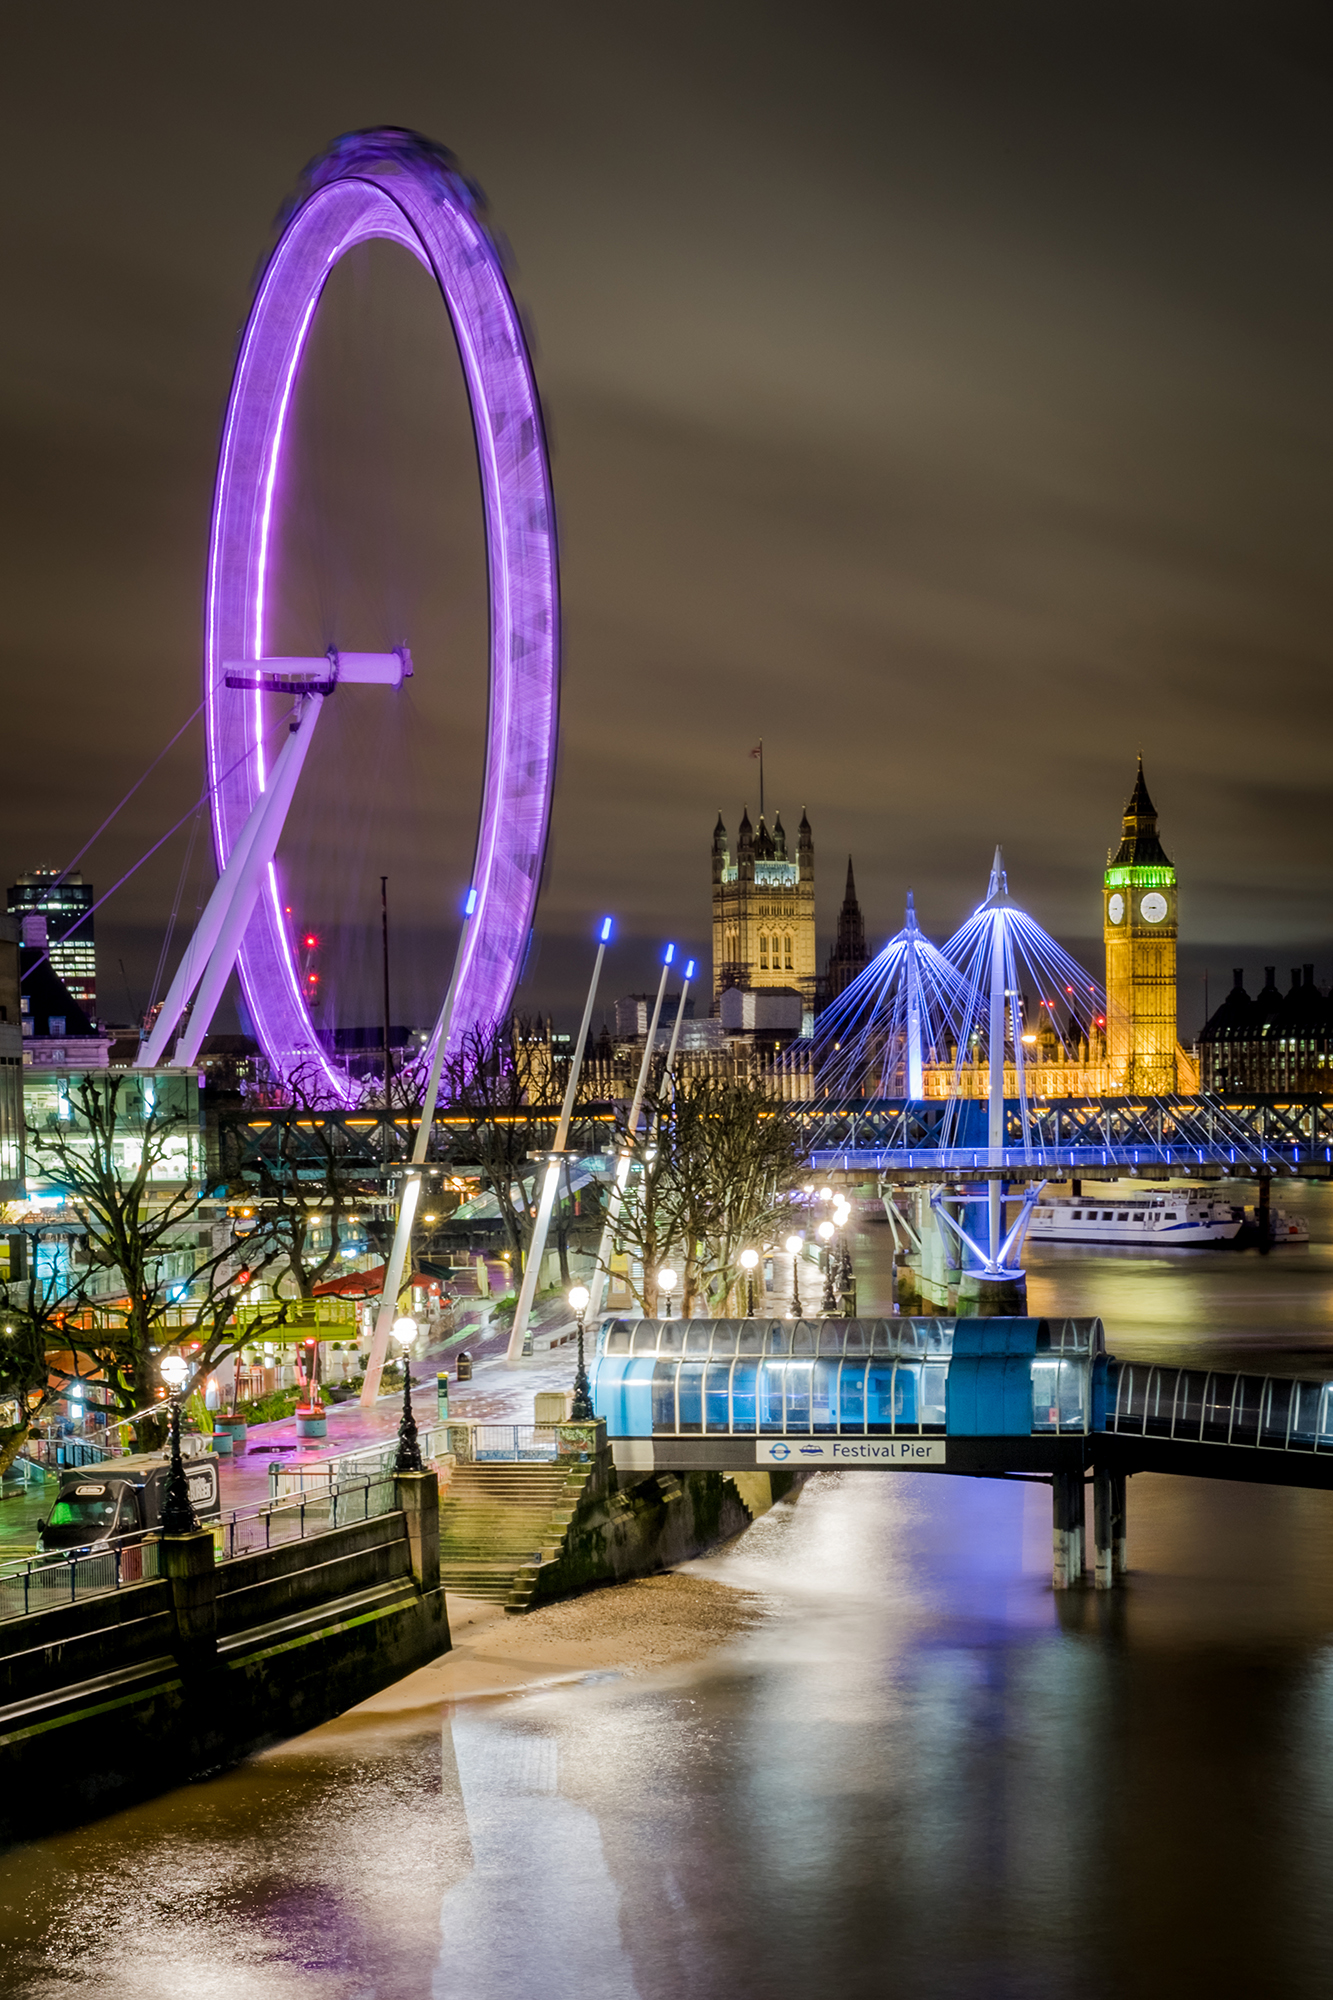 London Eye at night from Waterloo Bridge taken by Trevor Sherwin